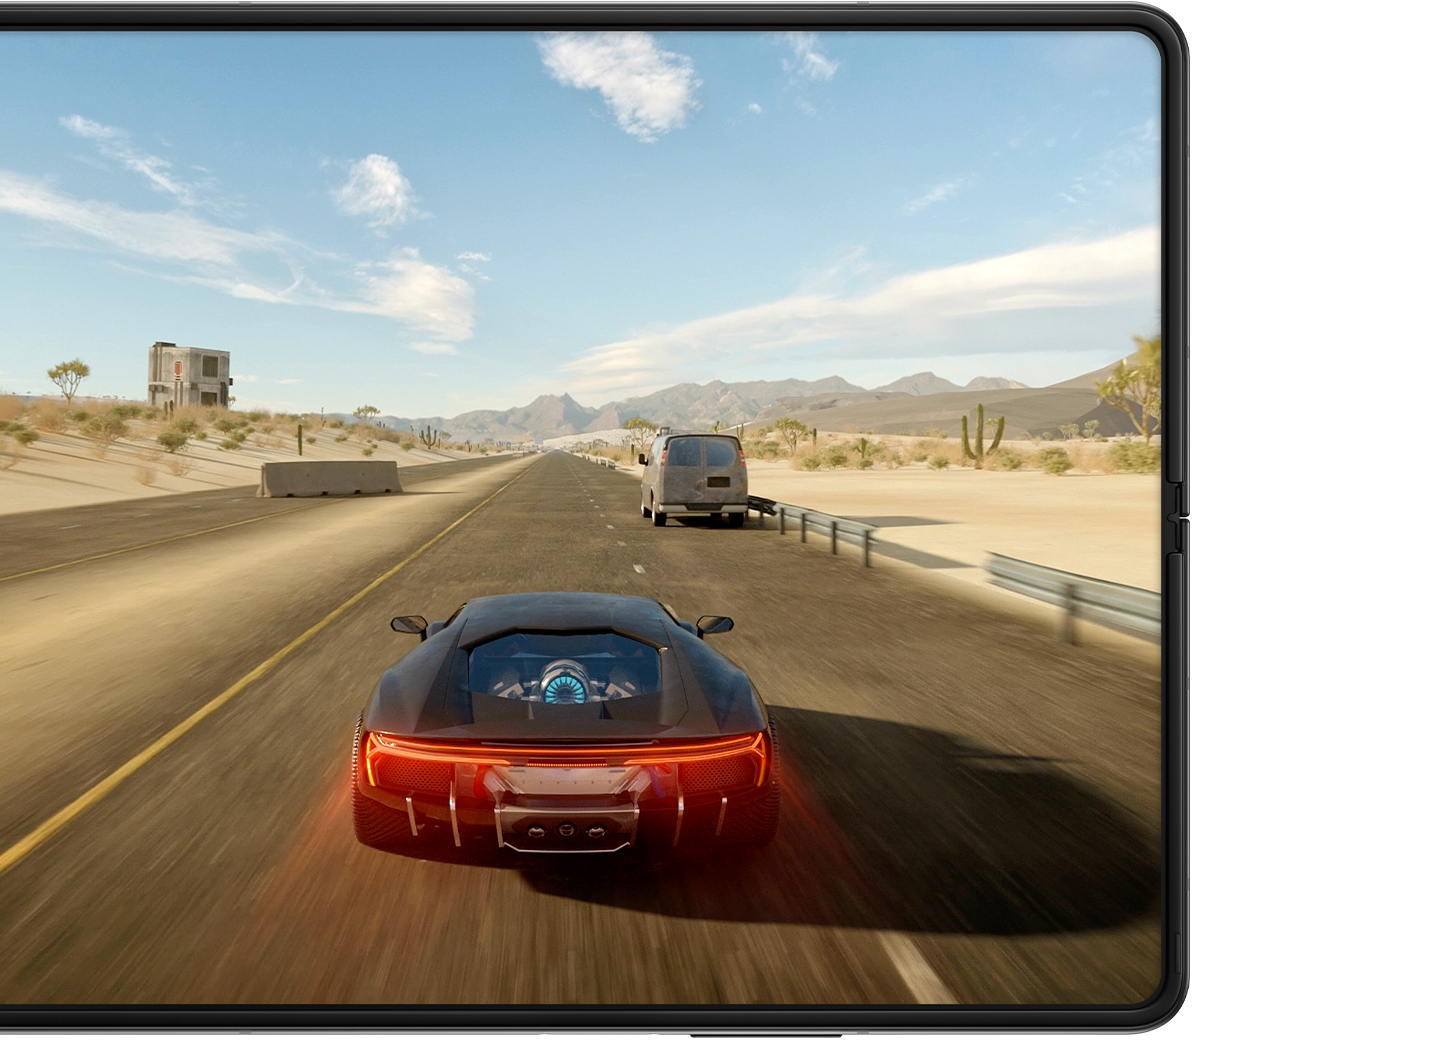 Unfolded Galaxy Z Fold3 5G with a scene from a game of a red car racing down a road on the Main Screen.